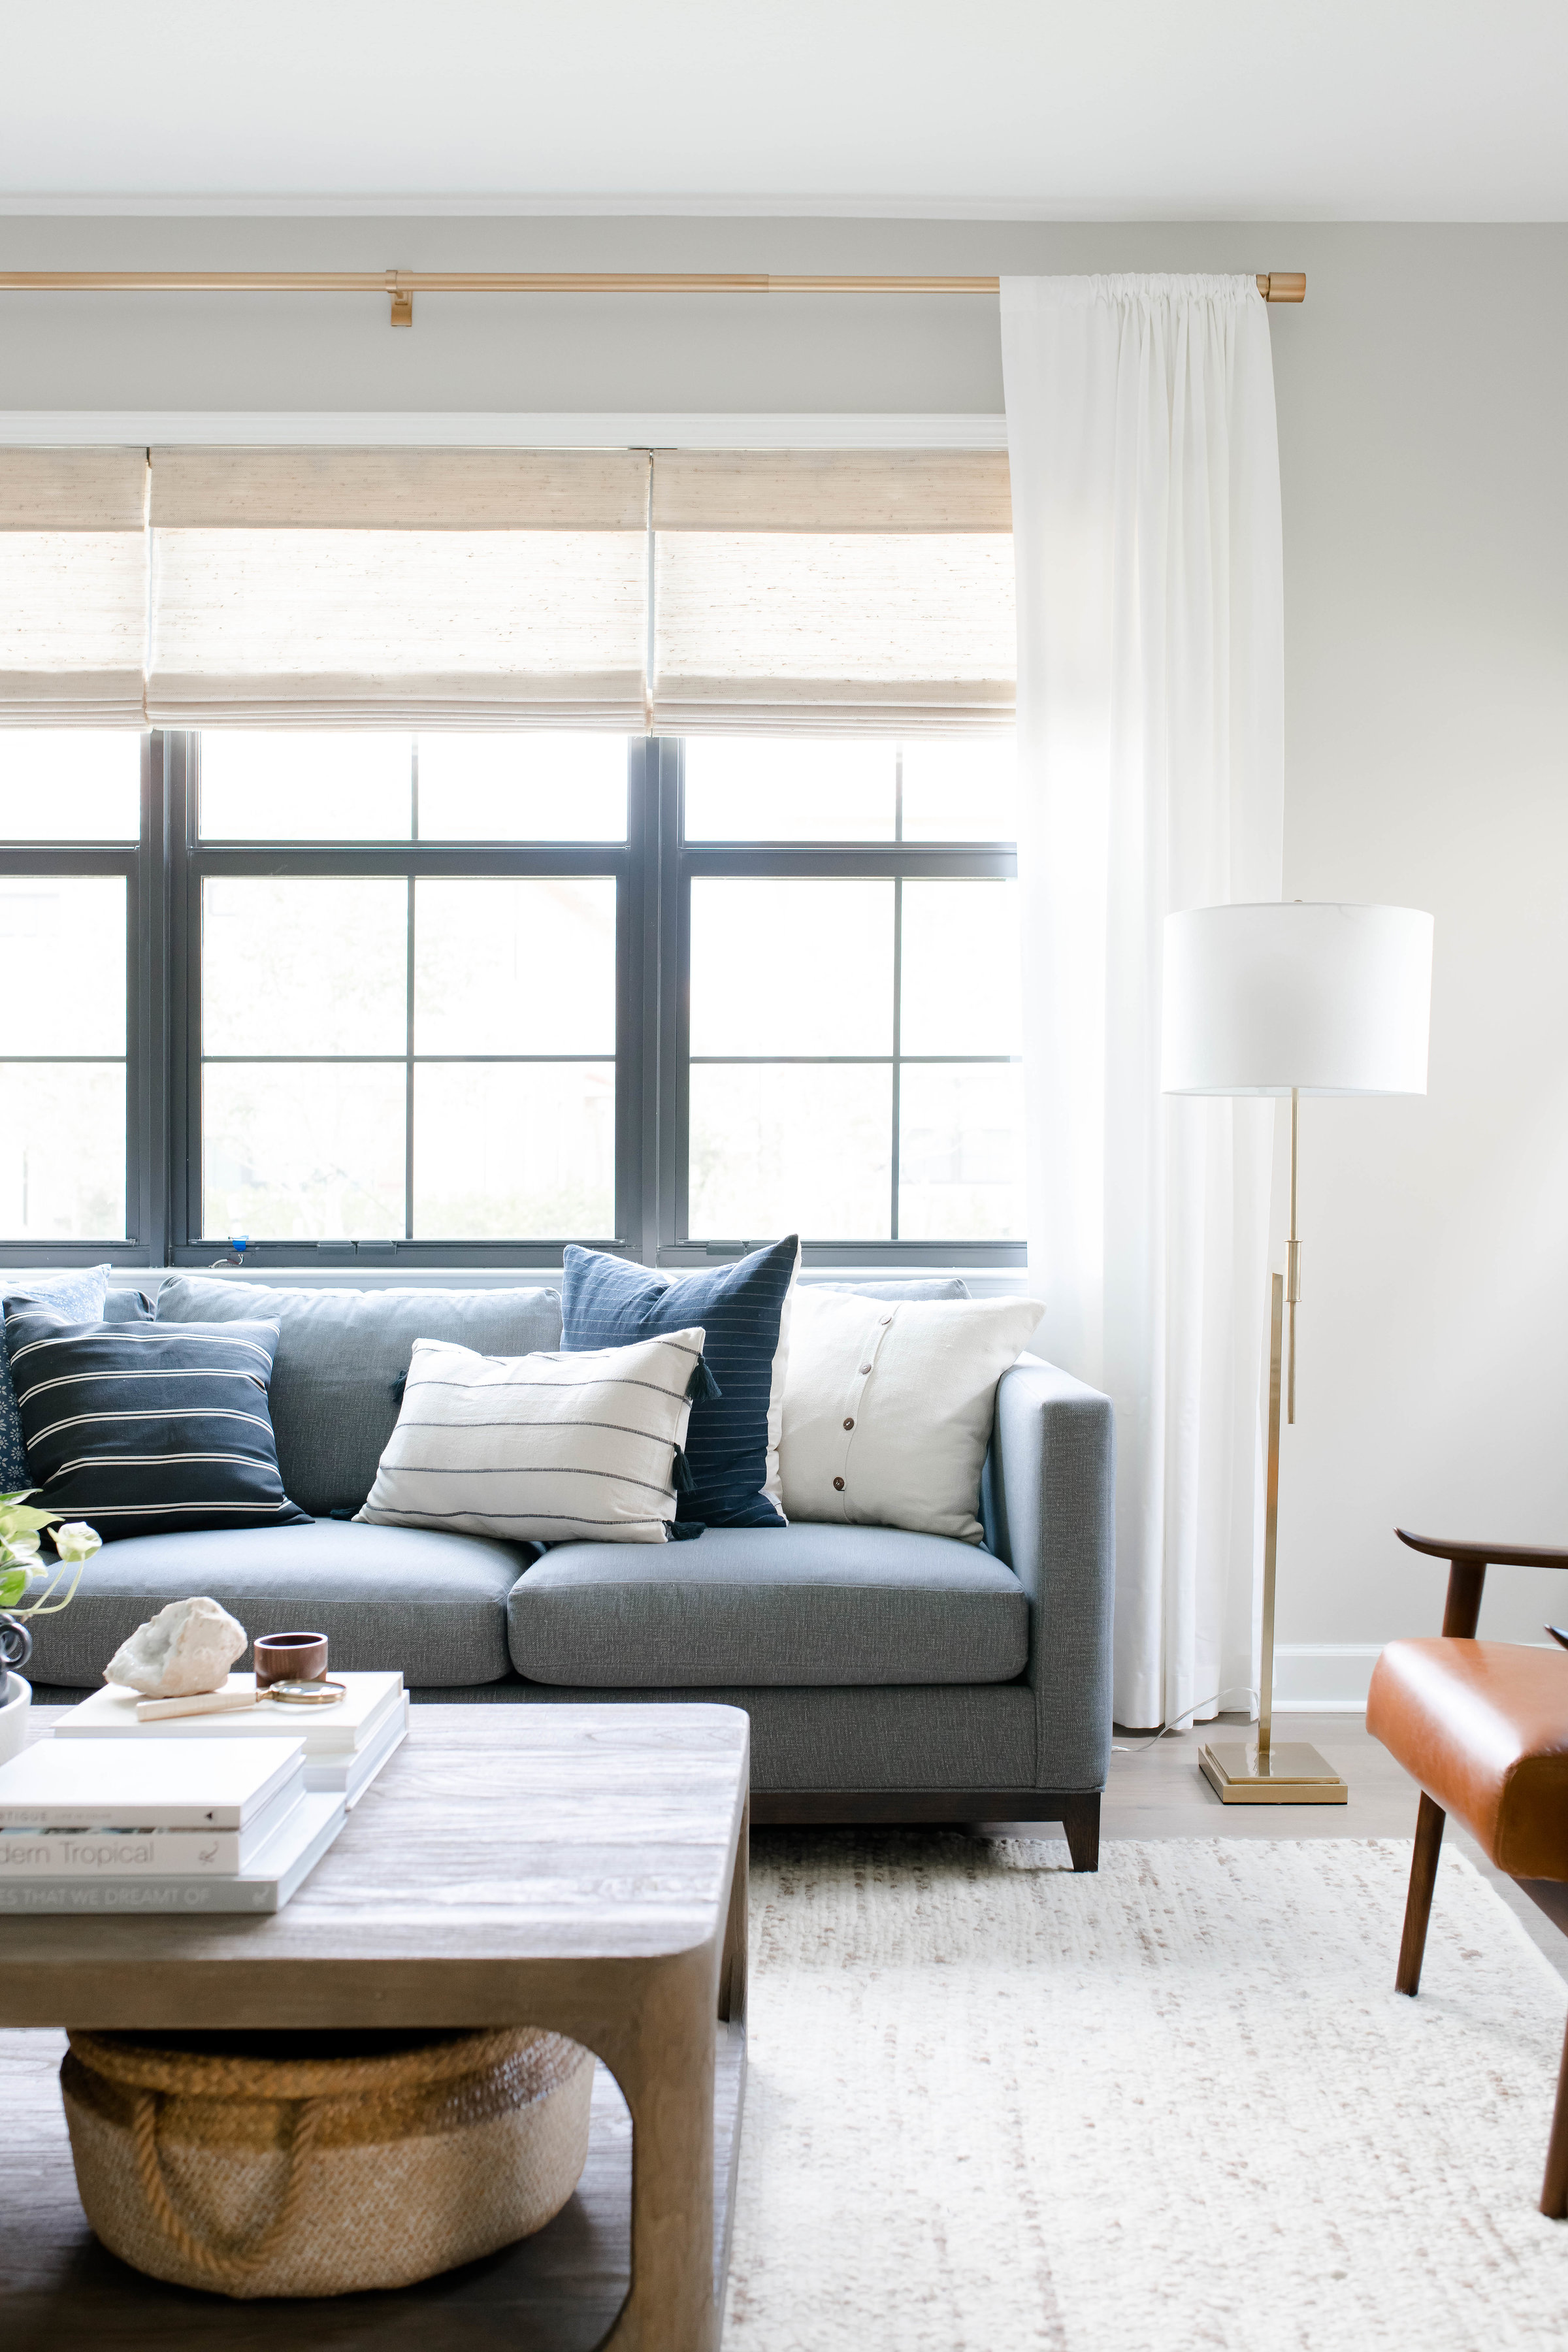 parkland project living room - the habitat collective - interior design